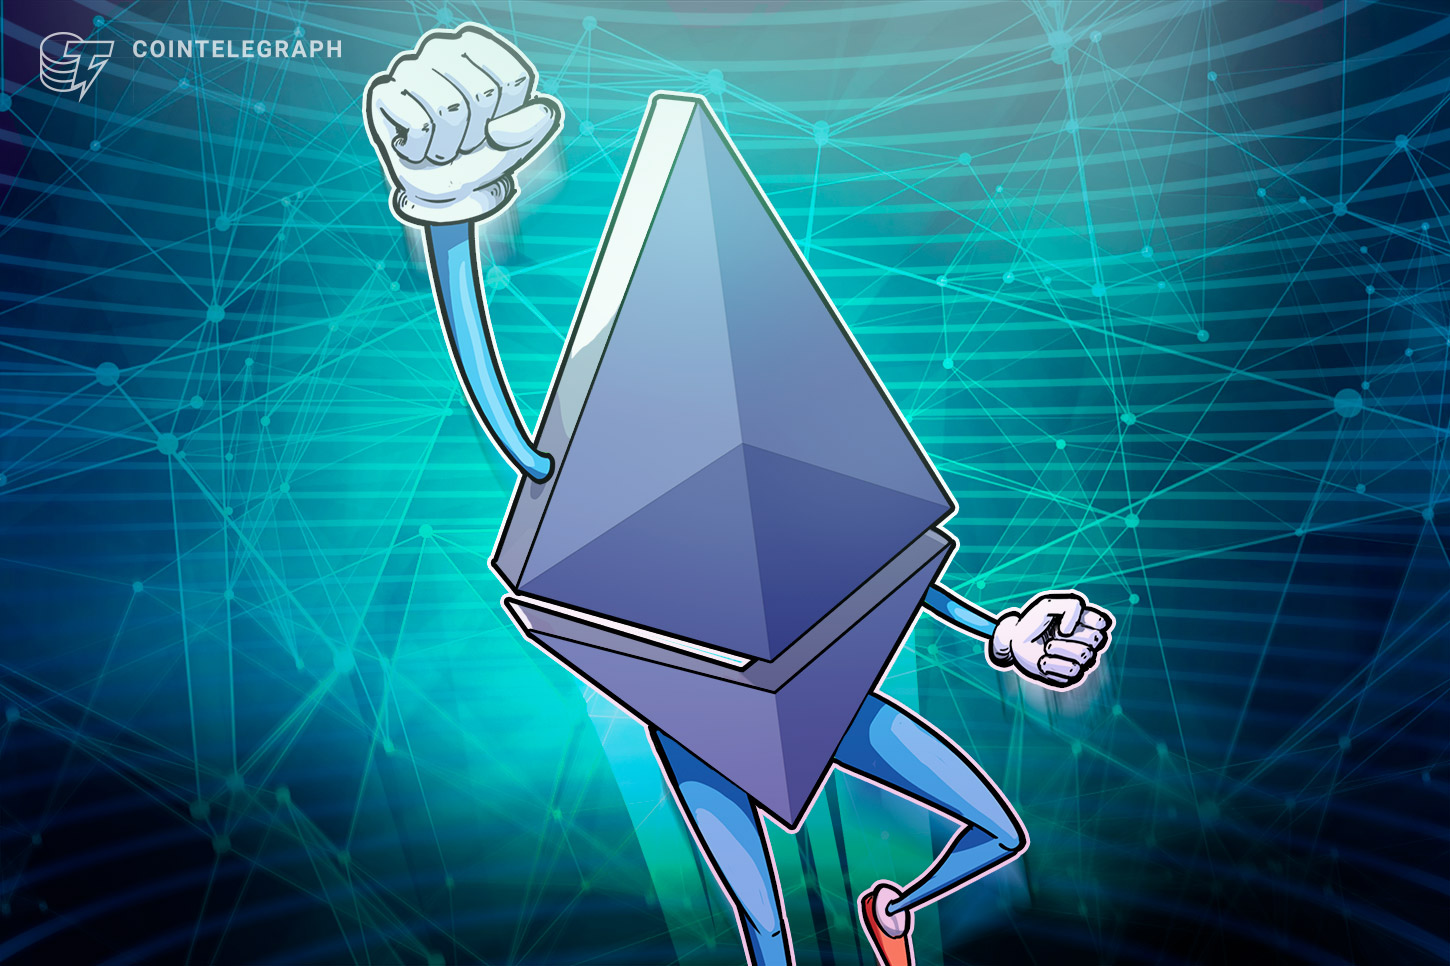 Ethereum posts new highs as DeFi gas fees go through the roof